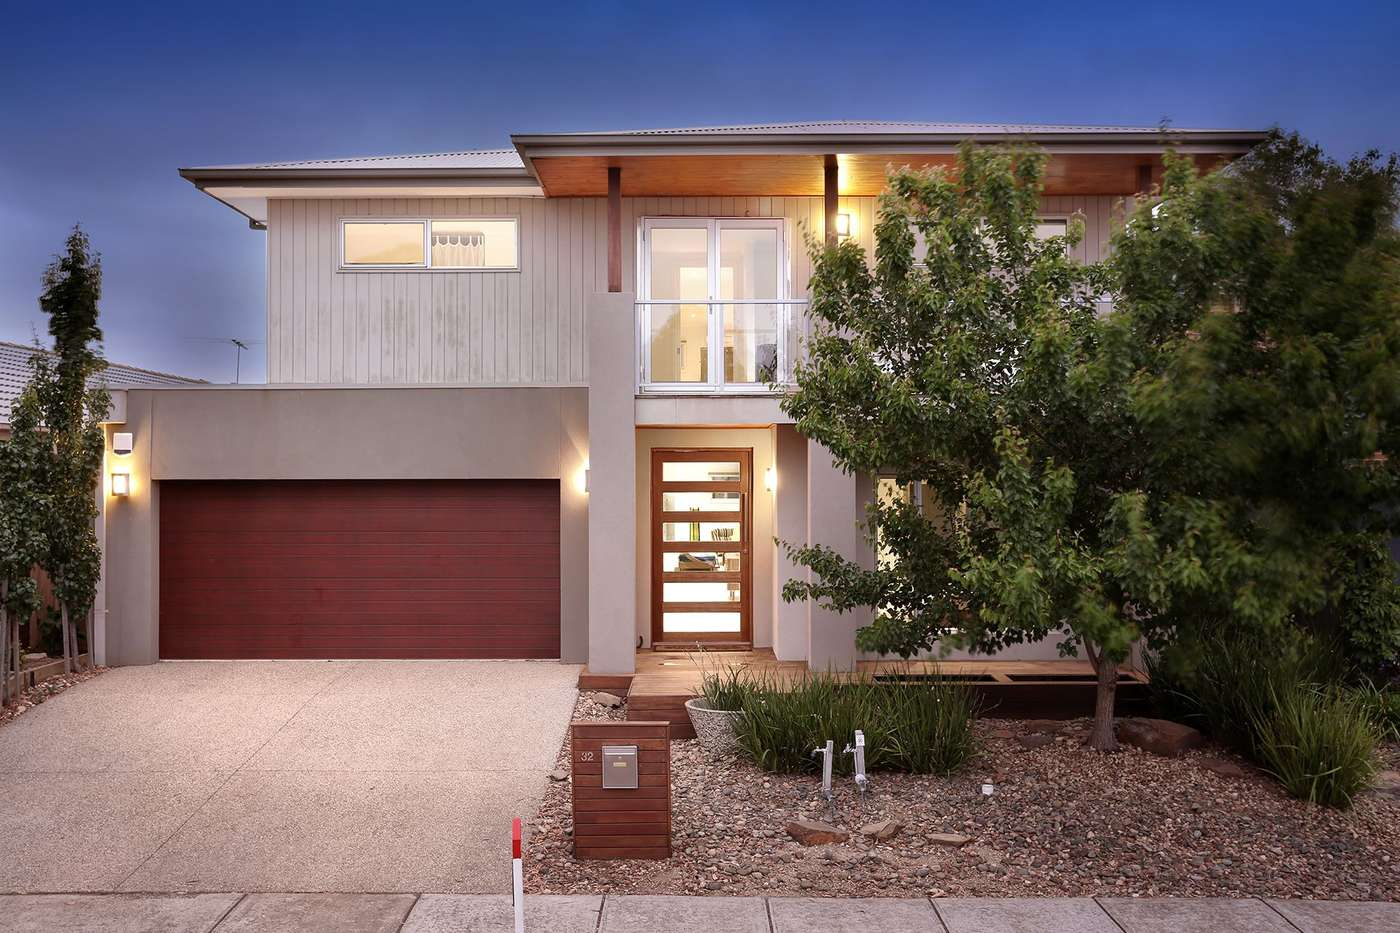 Main view of Homely house listing, 32 Pedder Street, Manor Lakes, VIC 3024